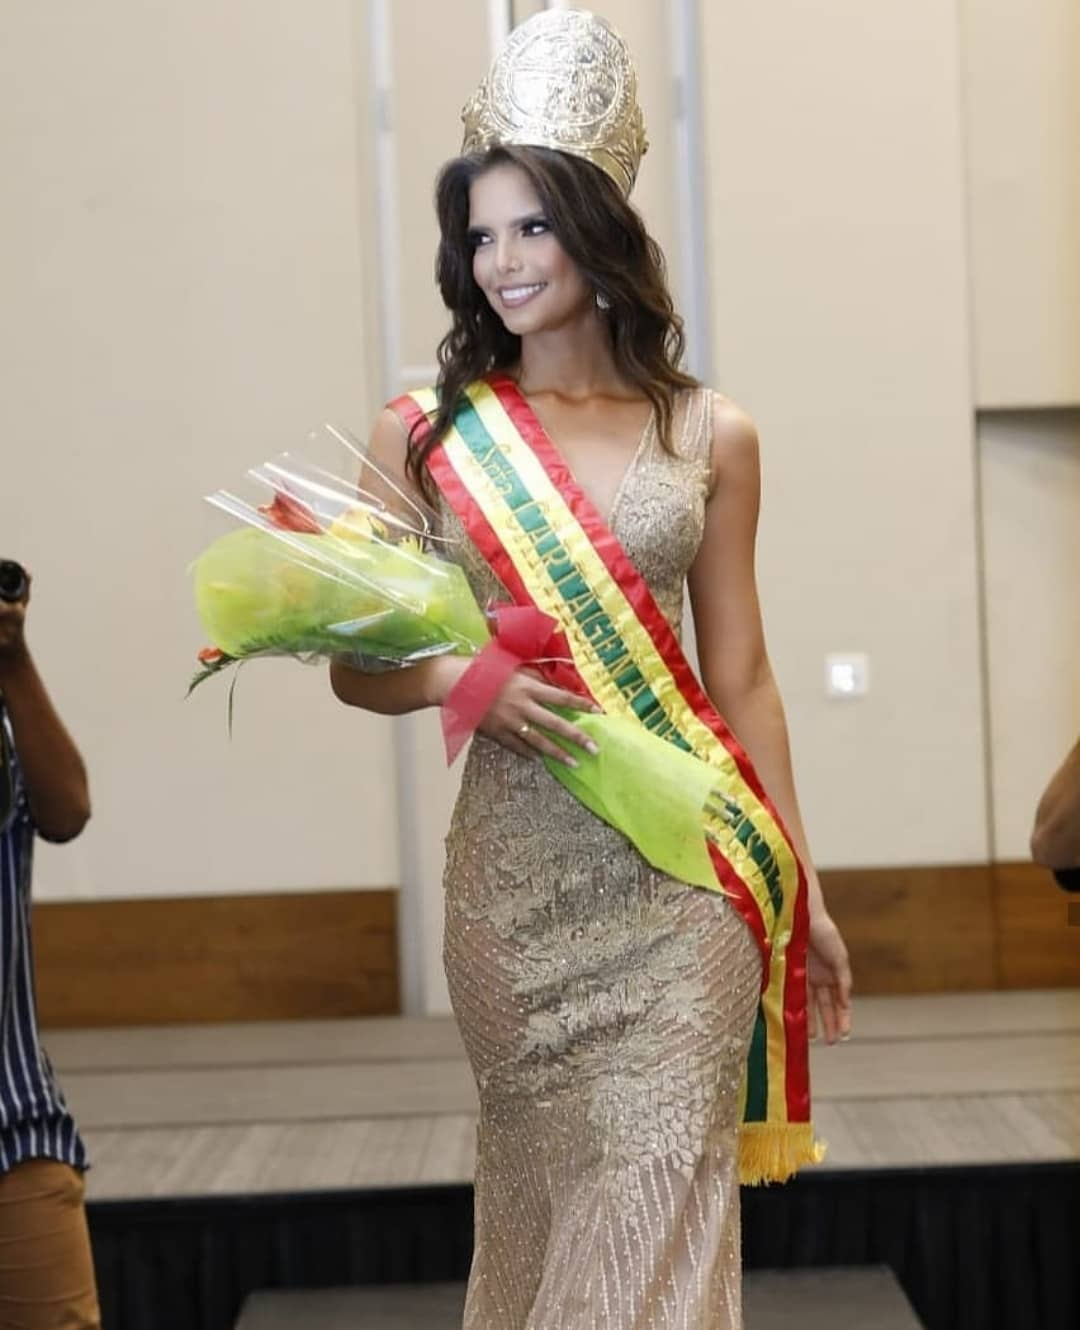 yaiselle tous, miss supranational colombia 2019. 65521110